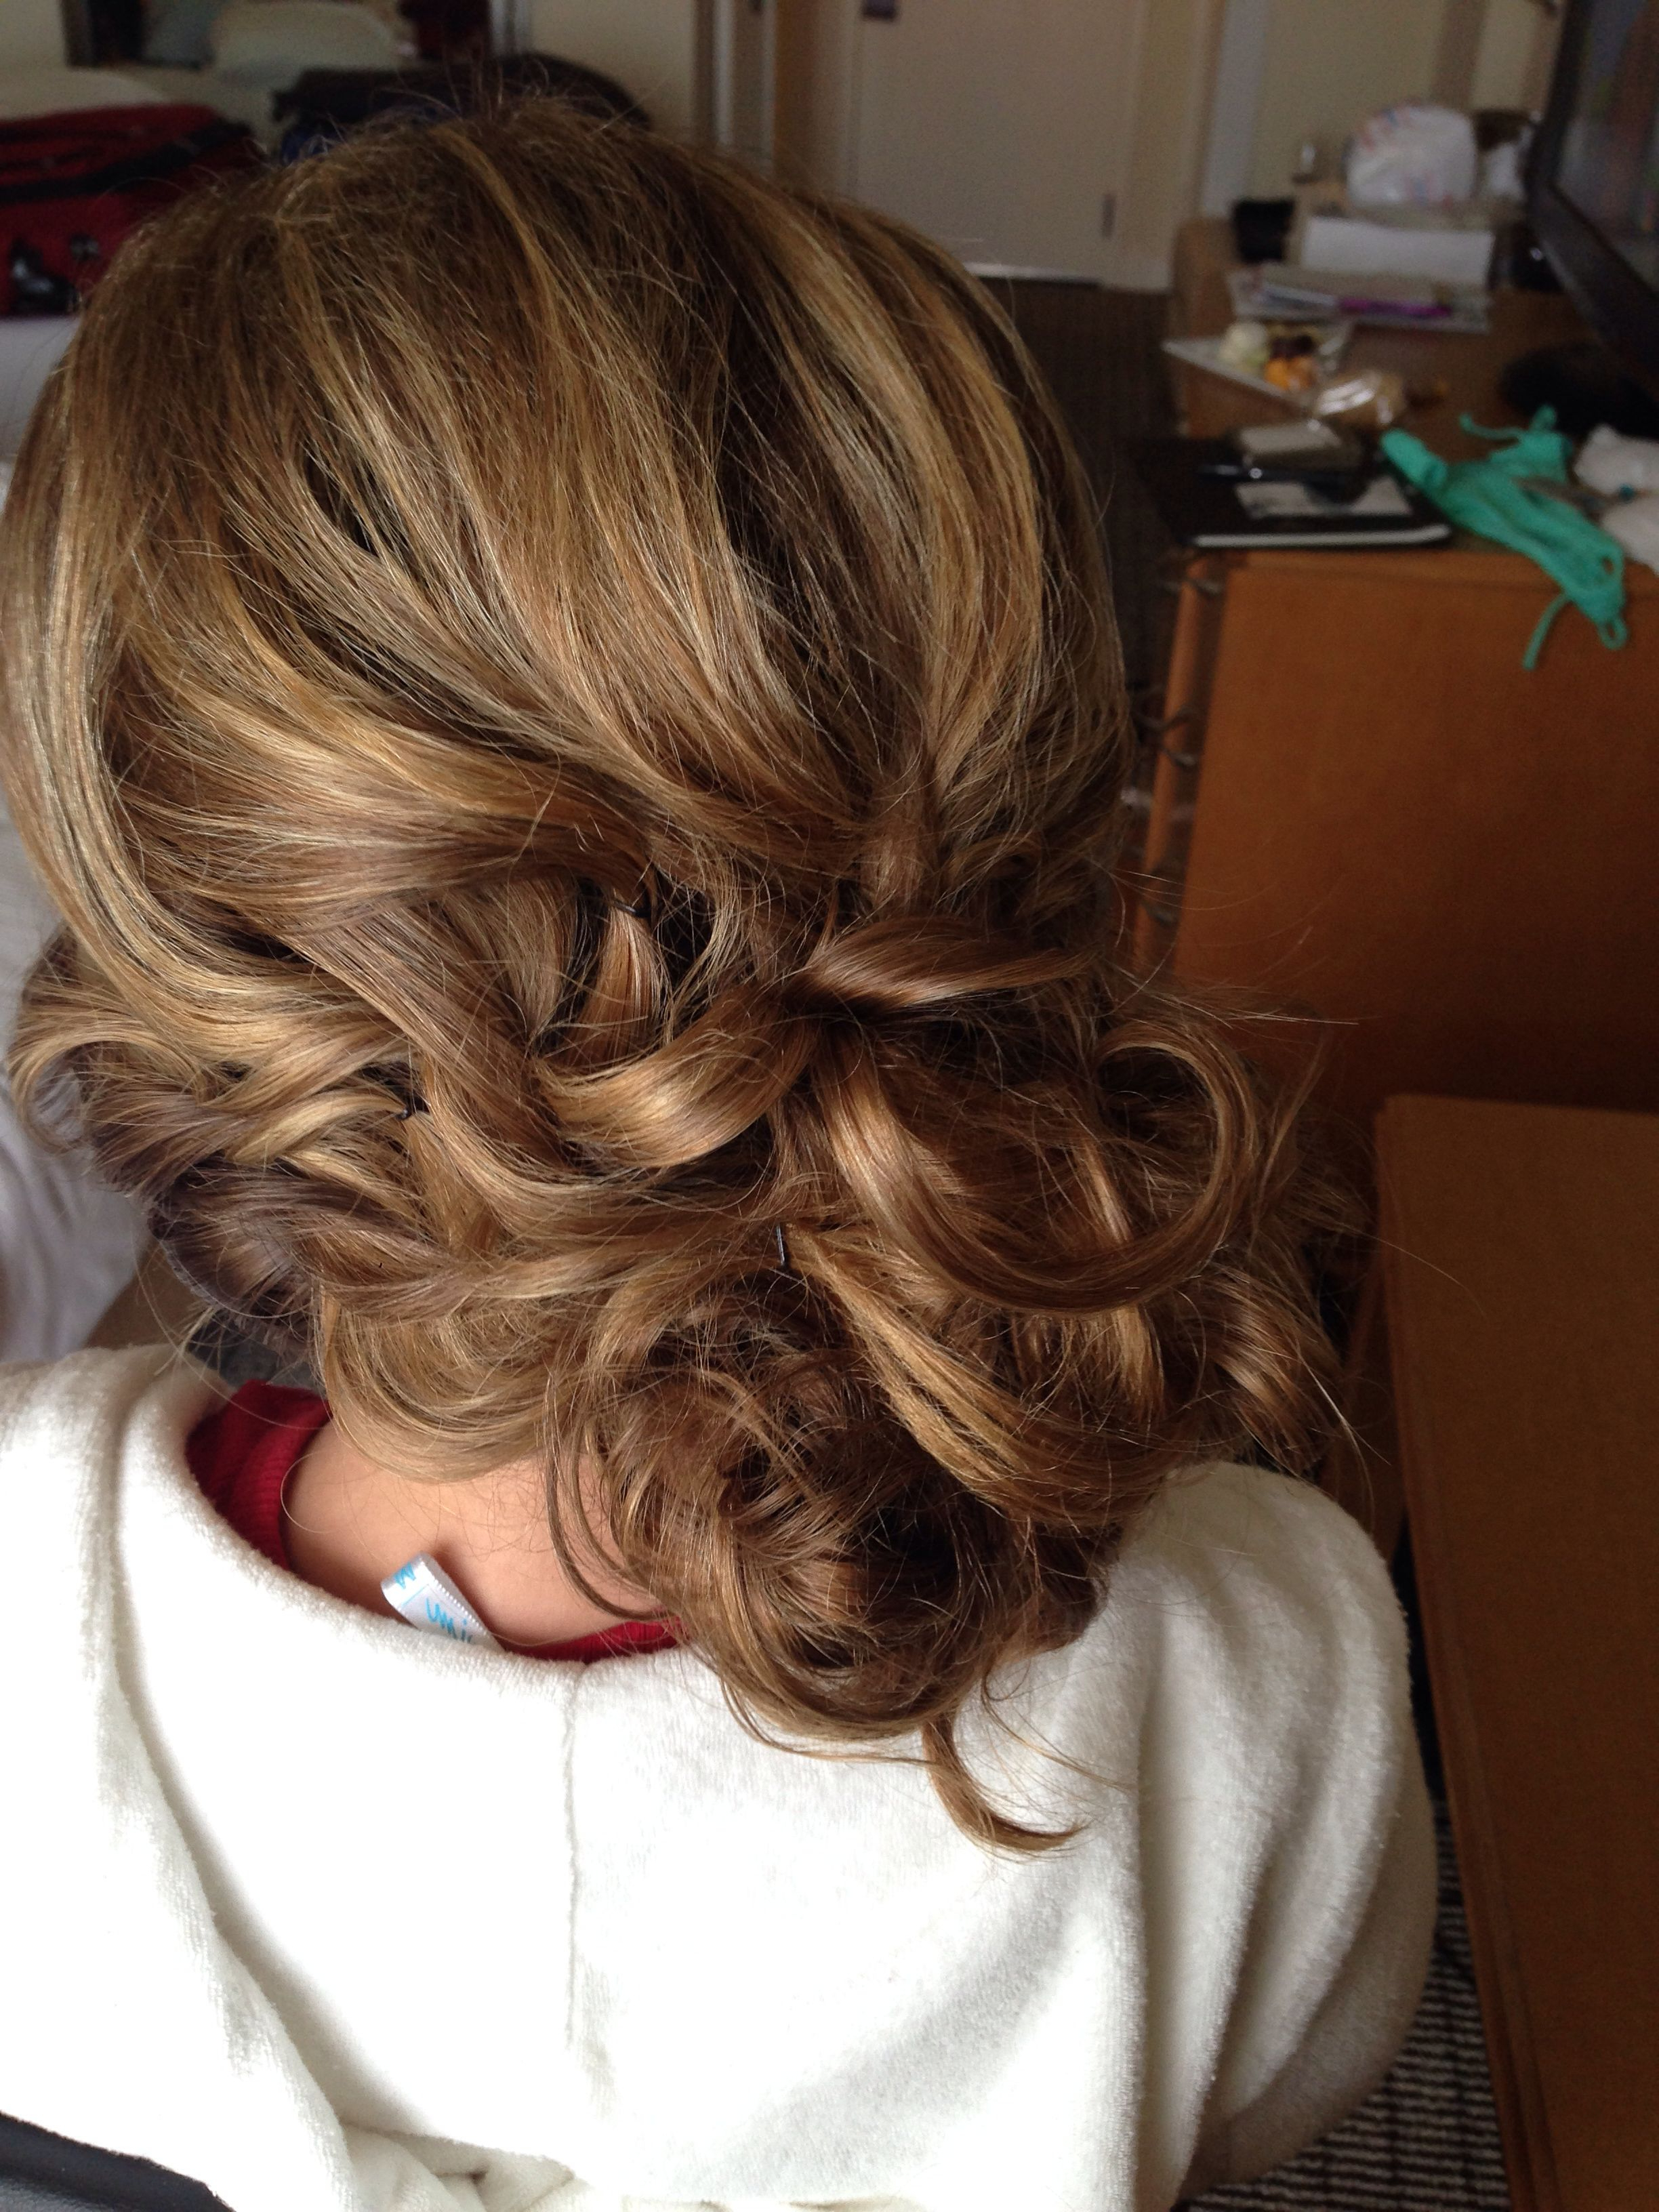 2020 Latest Loose Updo Wedding Hairstyles With Whipped Curls